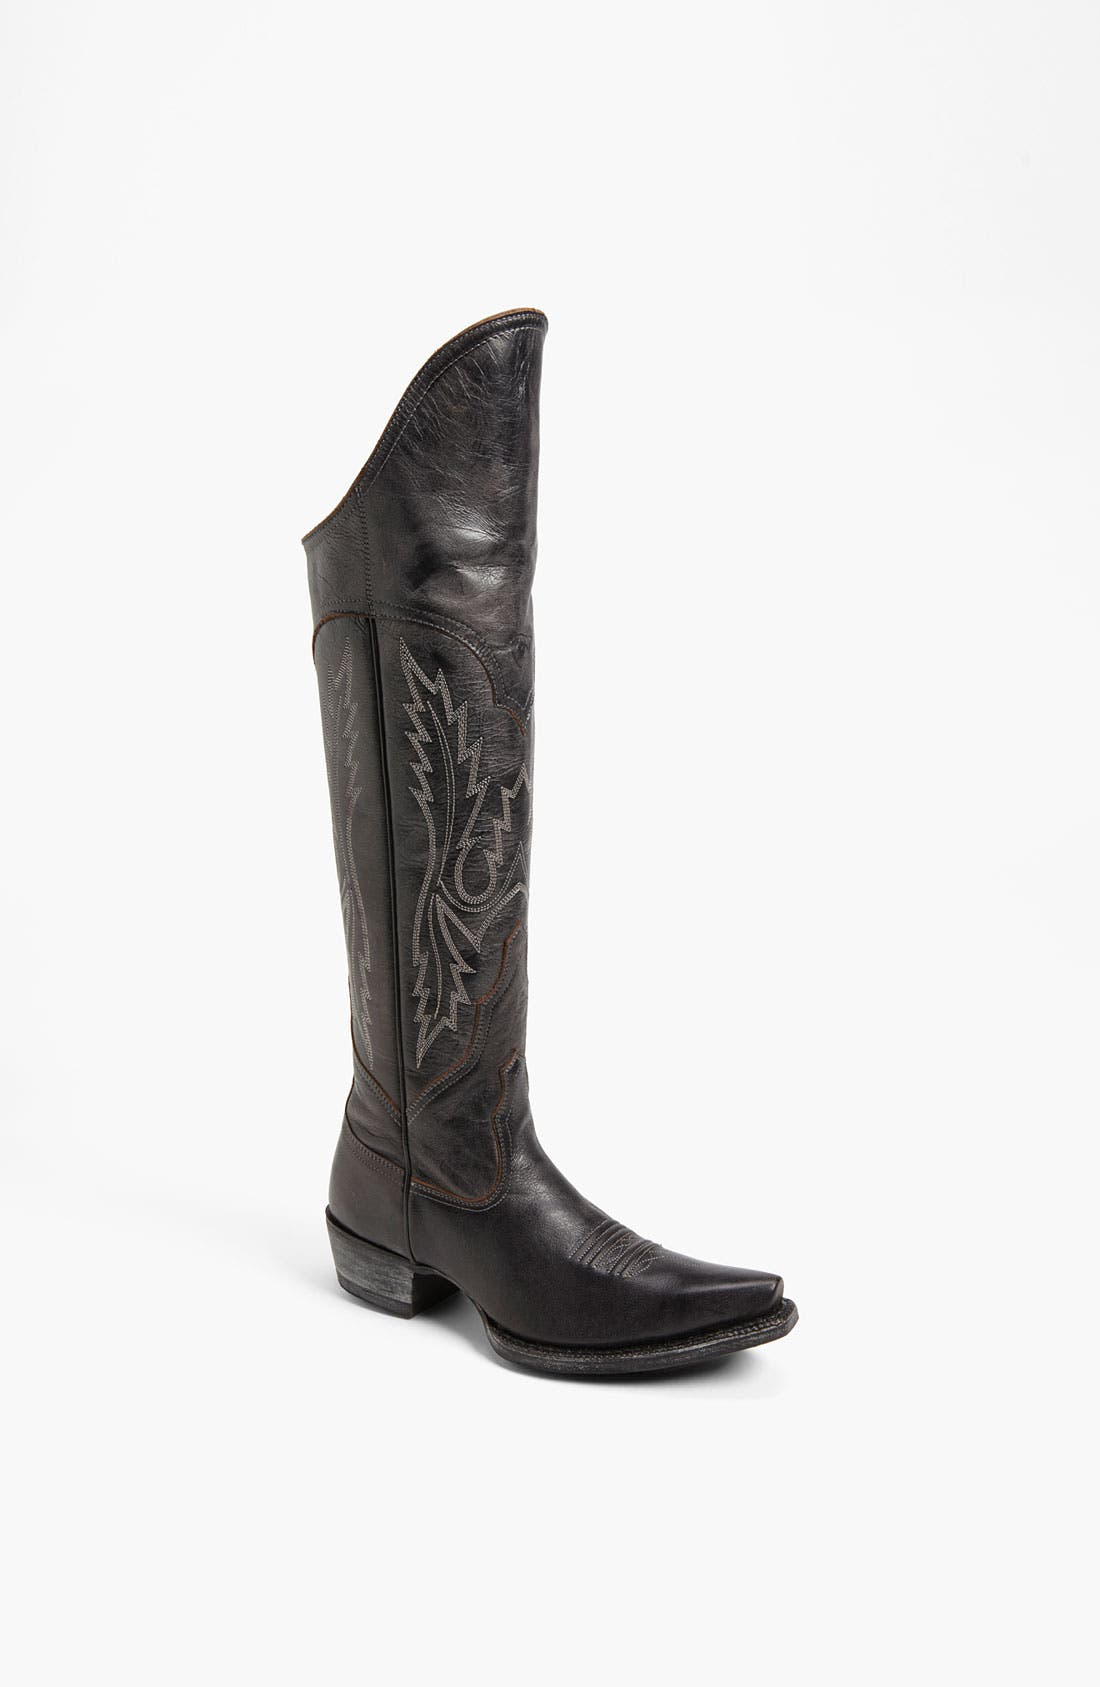 ARIAT 'Murrieta' Boot, Main, color, 003